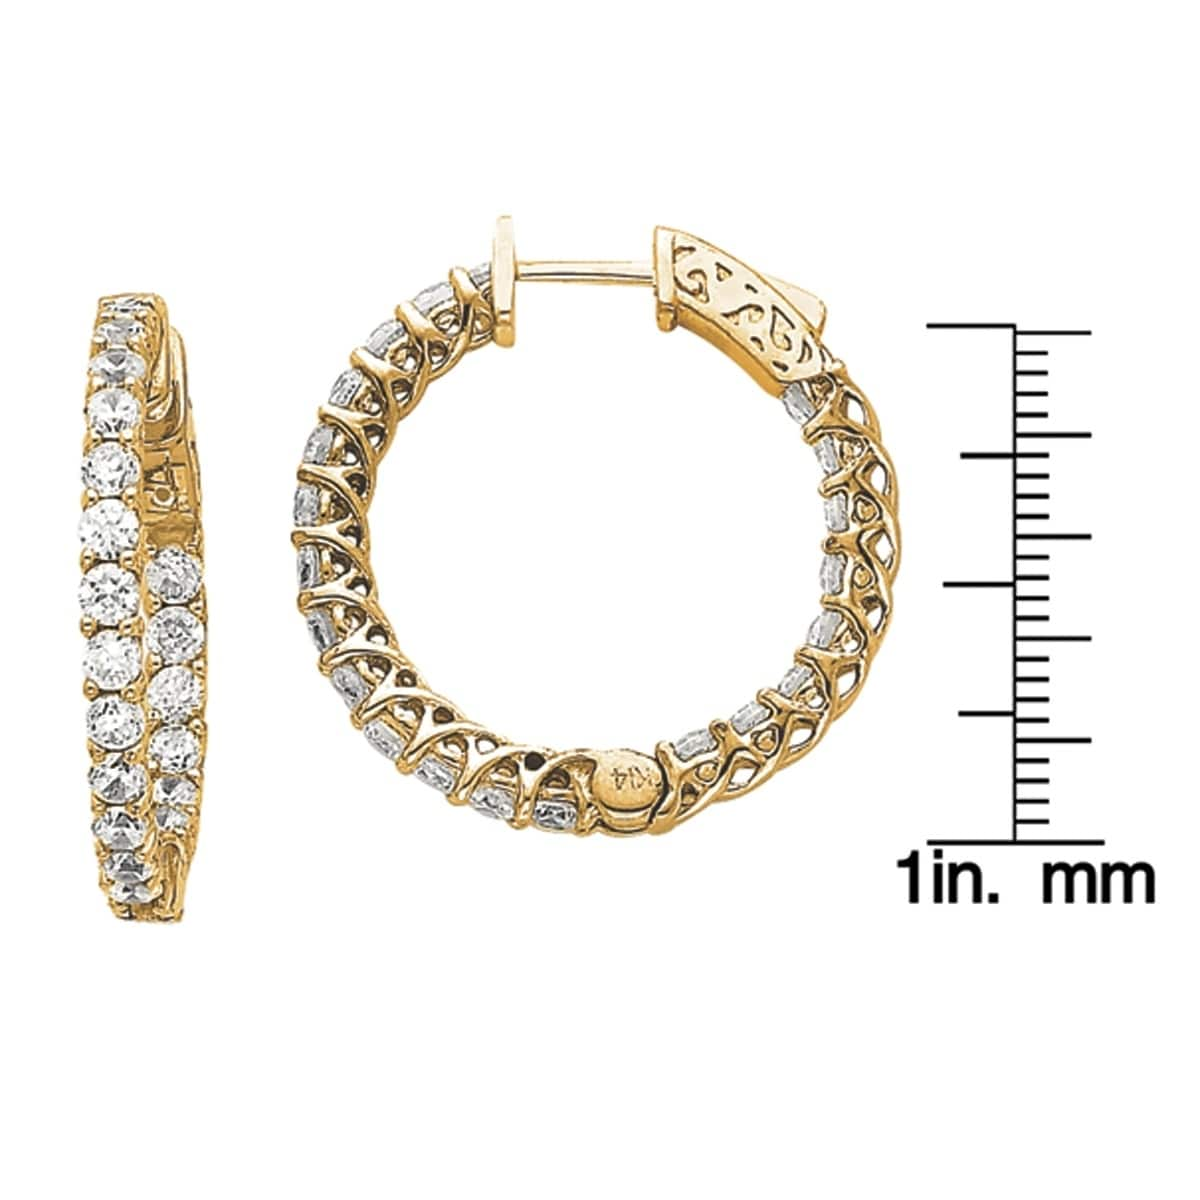 237b27b22 Shop Versil 14 Karat Yellow Gold True Light Moissanite Round Hoop With  Safety Clasp Mountings Earrings - On Sale - Free Shipping Today - Overstock  - ...